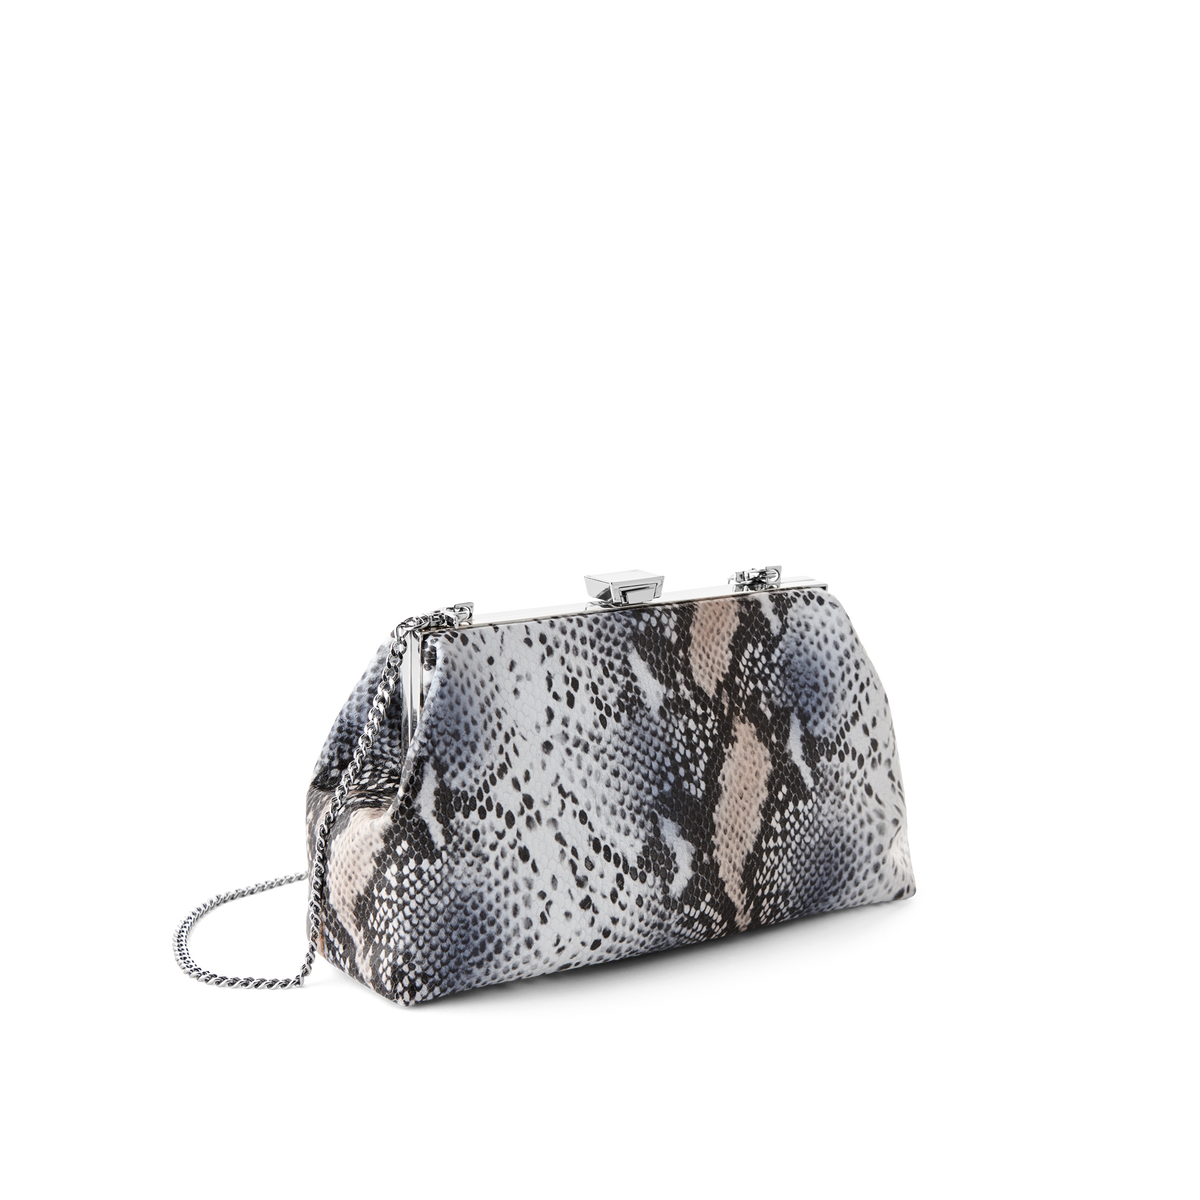 Python Jewel Bag with Silver Chain Strap